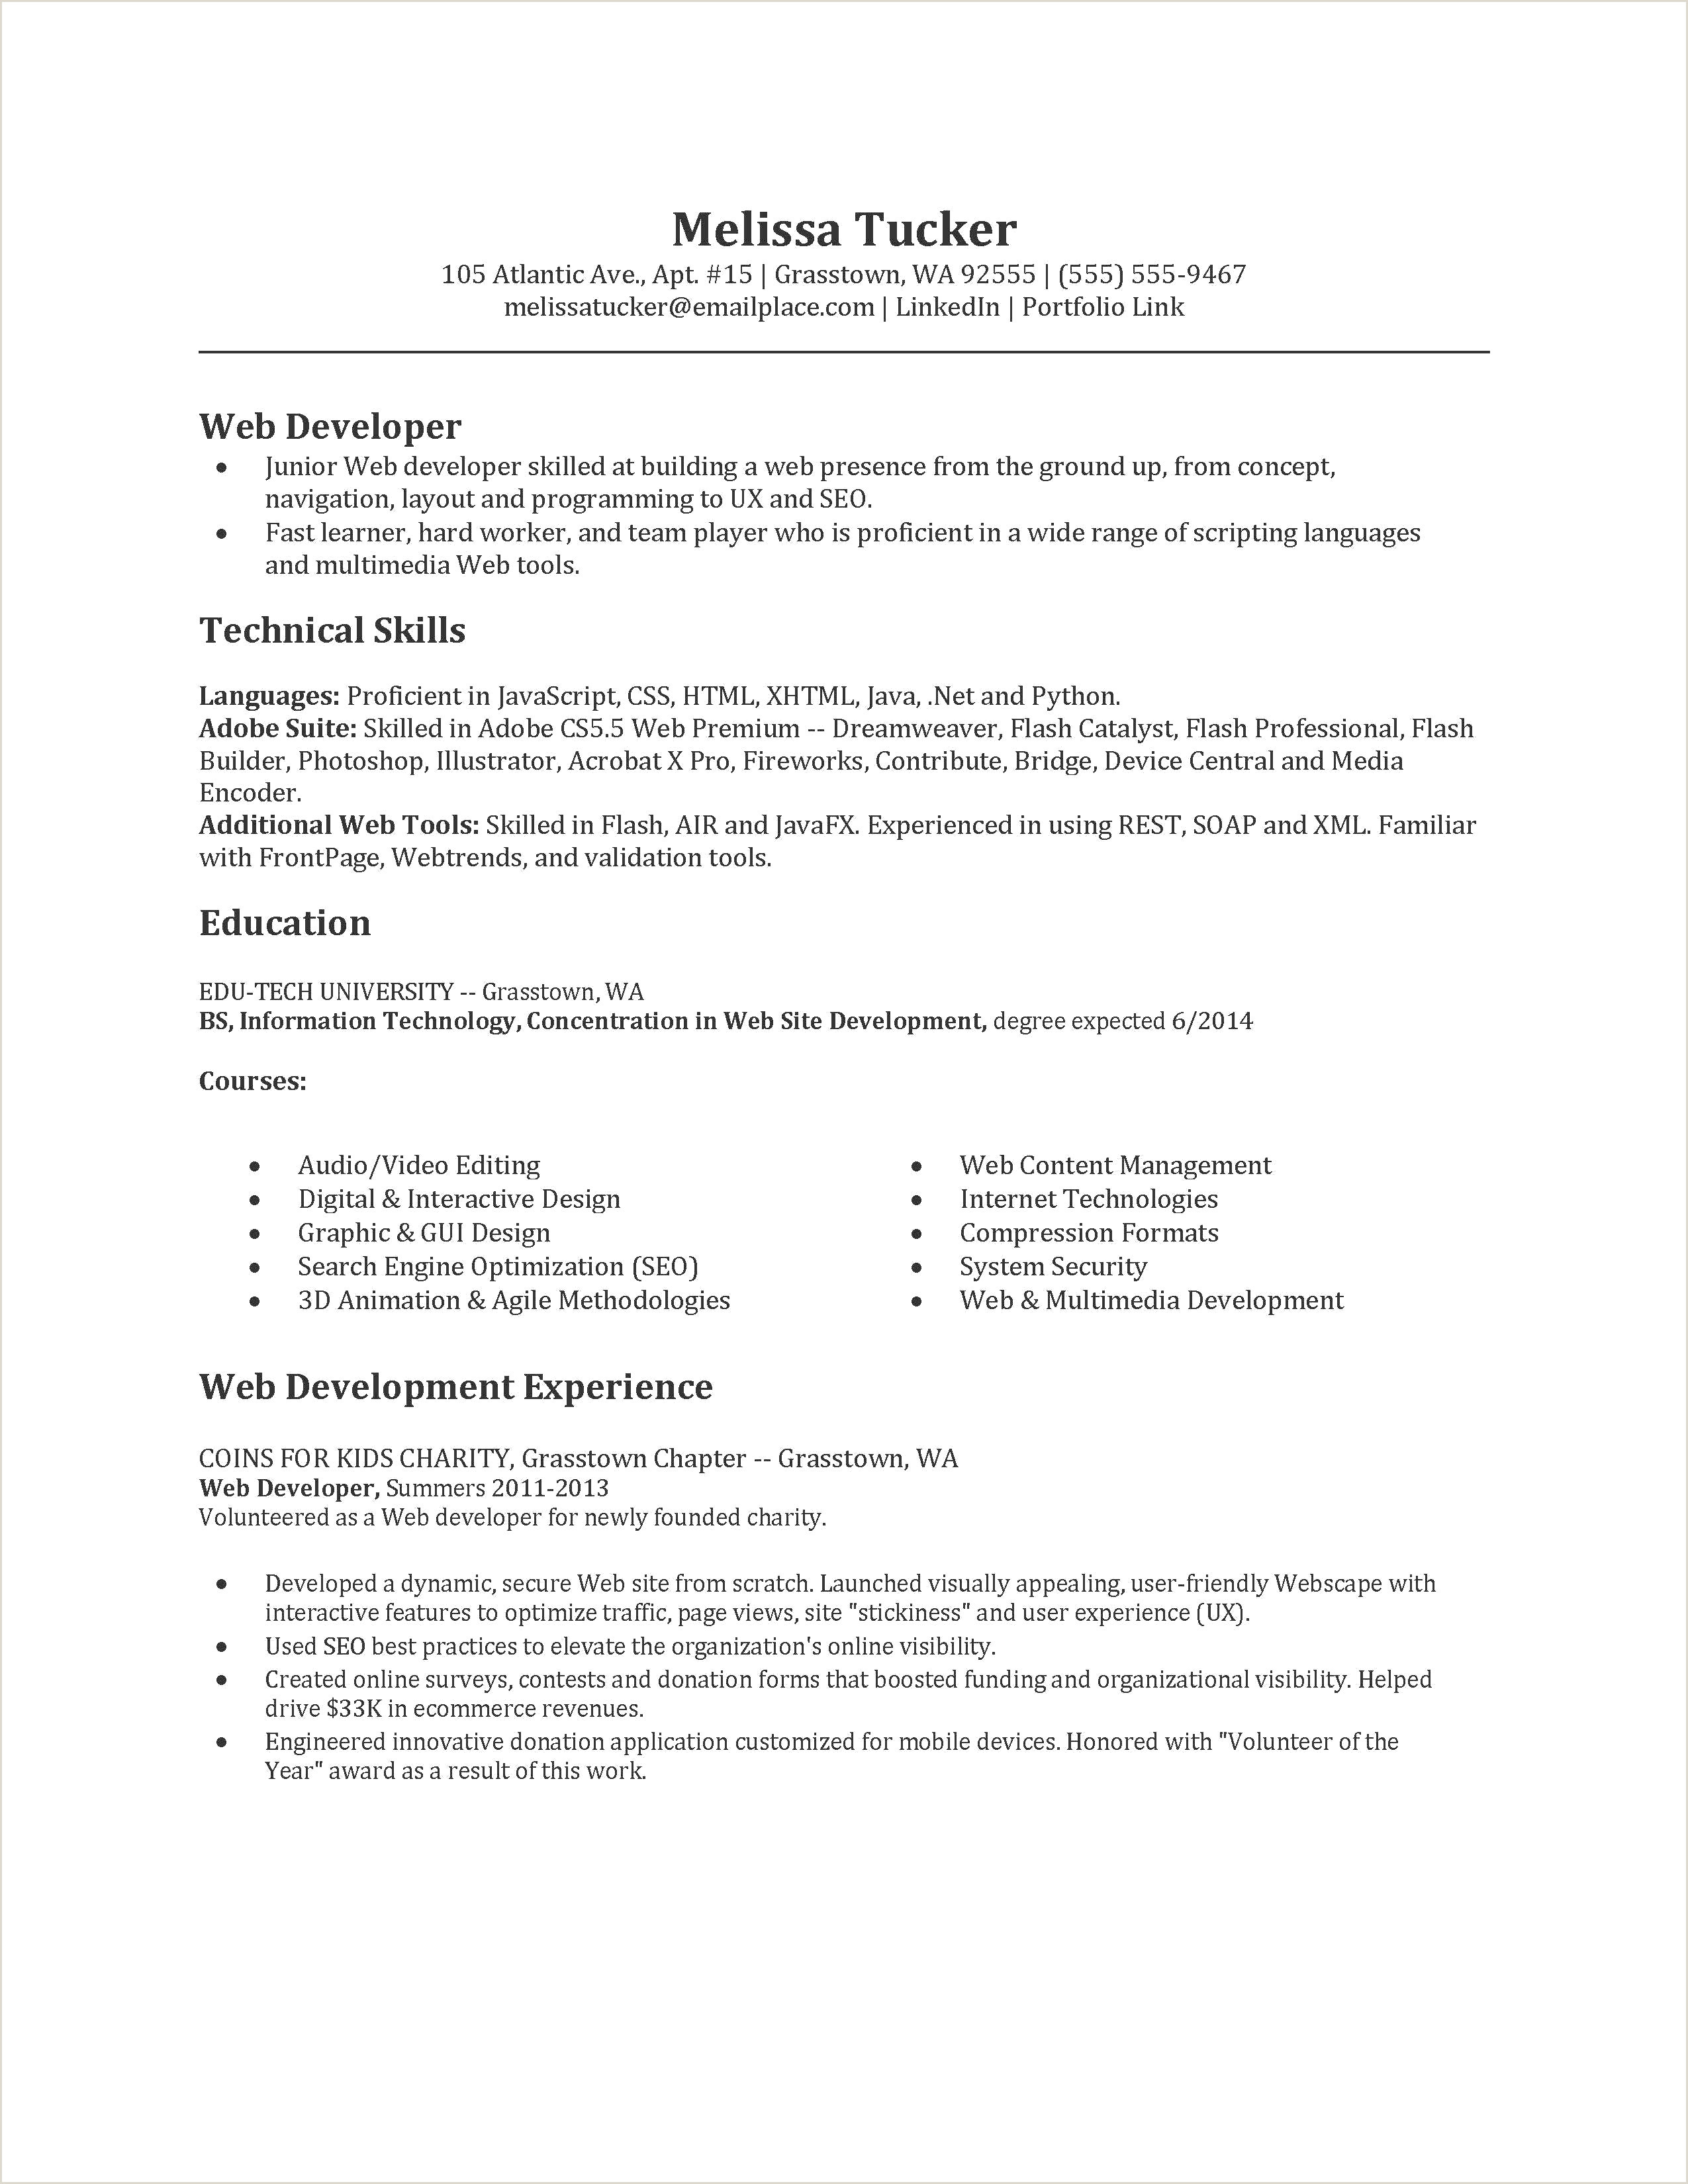 Sample Cover Letter for Net Developer Security Application Unique Resume Application Elegant